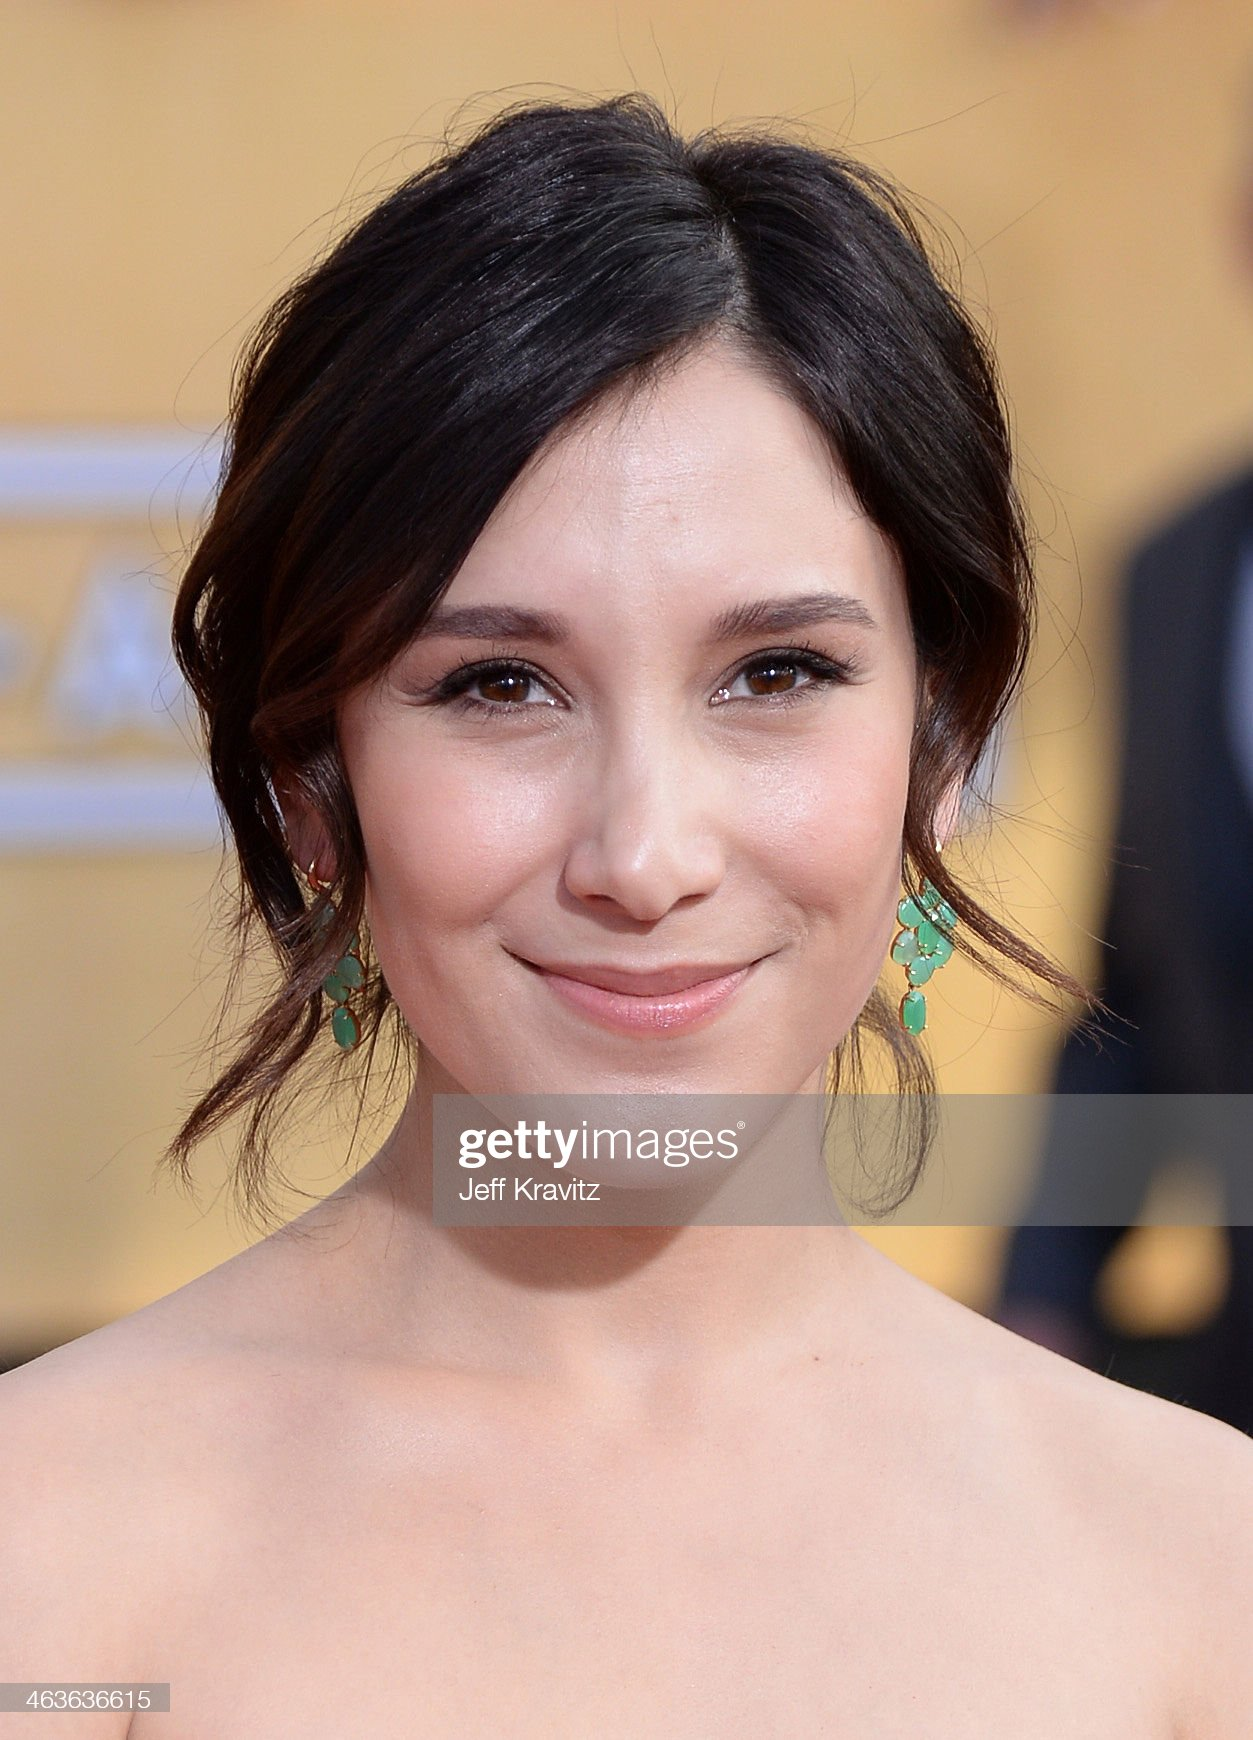 ¿Cuánto mide Sibel Kekilli? - Real height Actress-sibel-kekilli-attends-the-20th-annual-screen-actors-guild-at-picture-id463636615?s=2048x2048